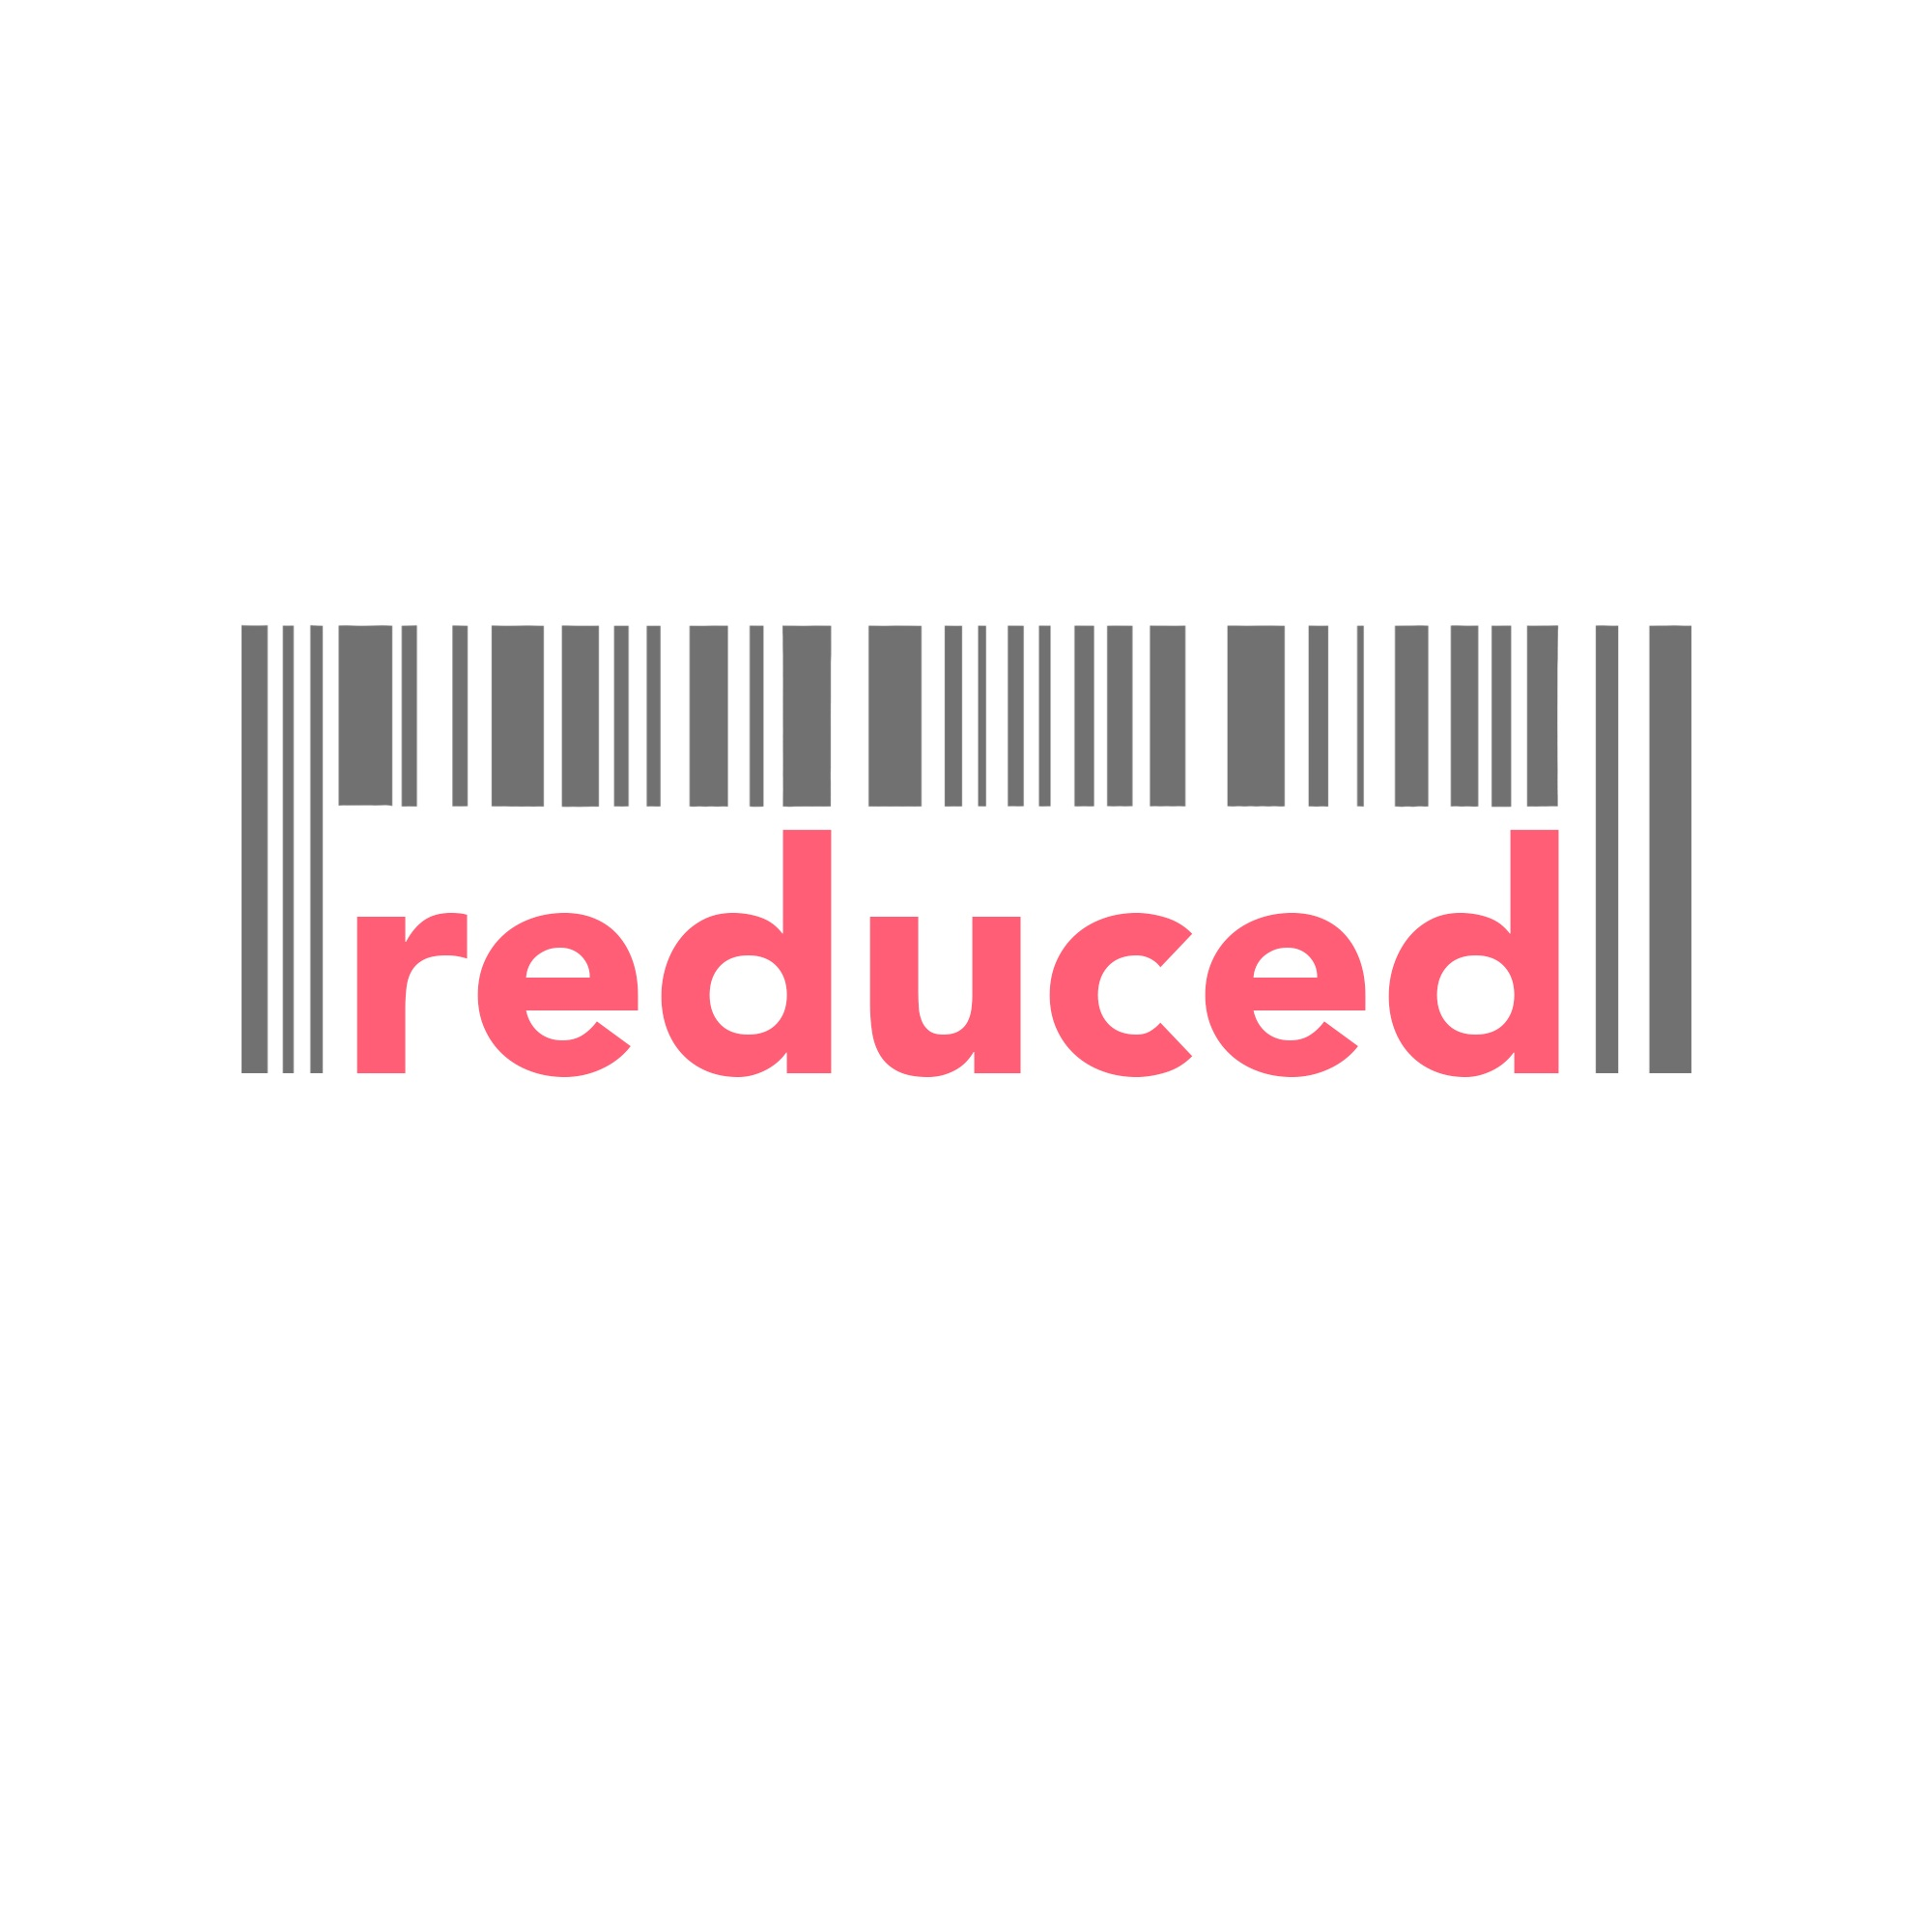 Reduced.